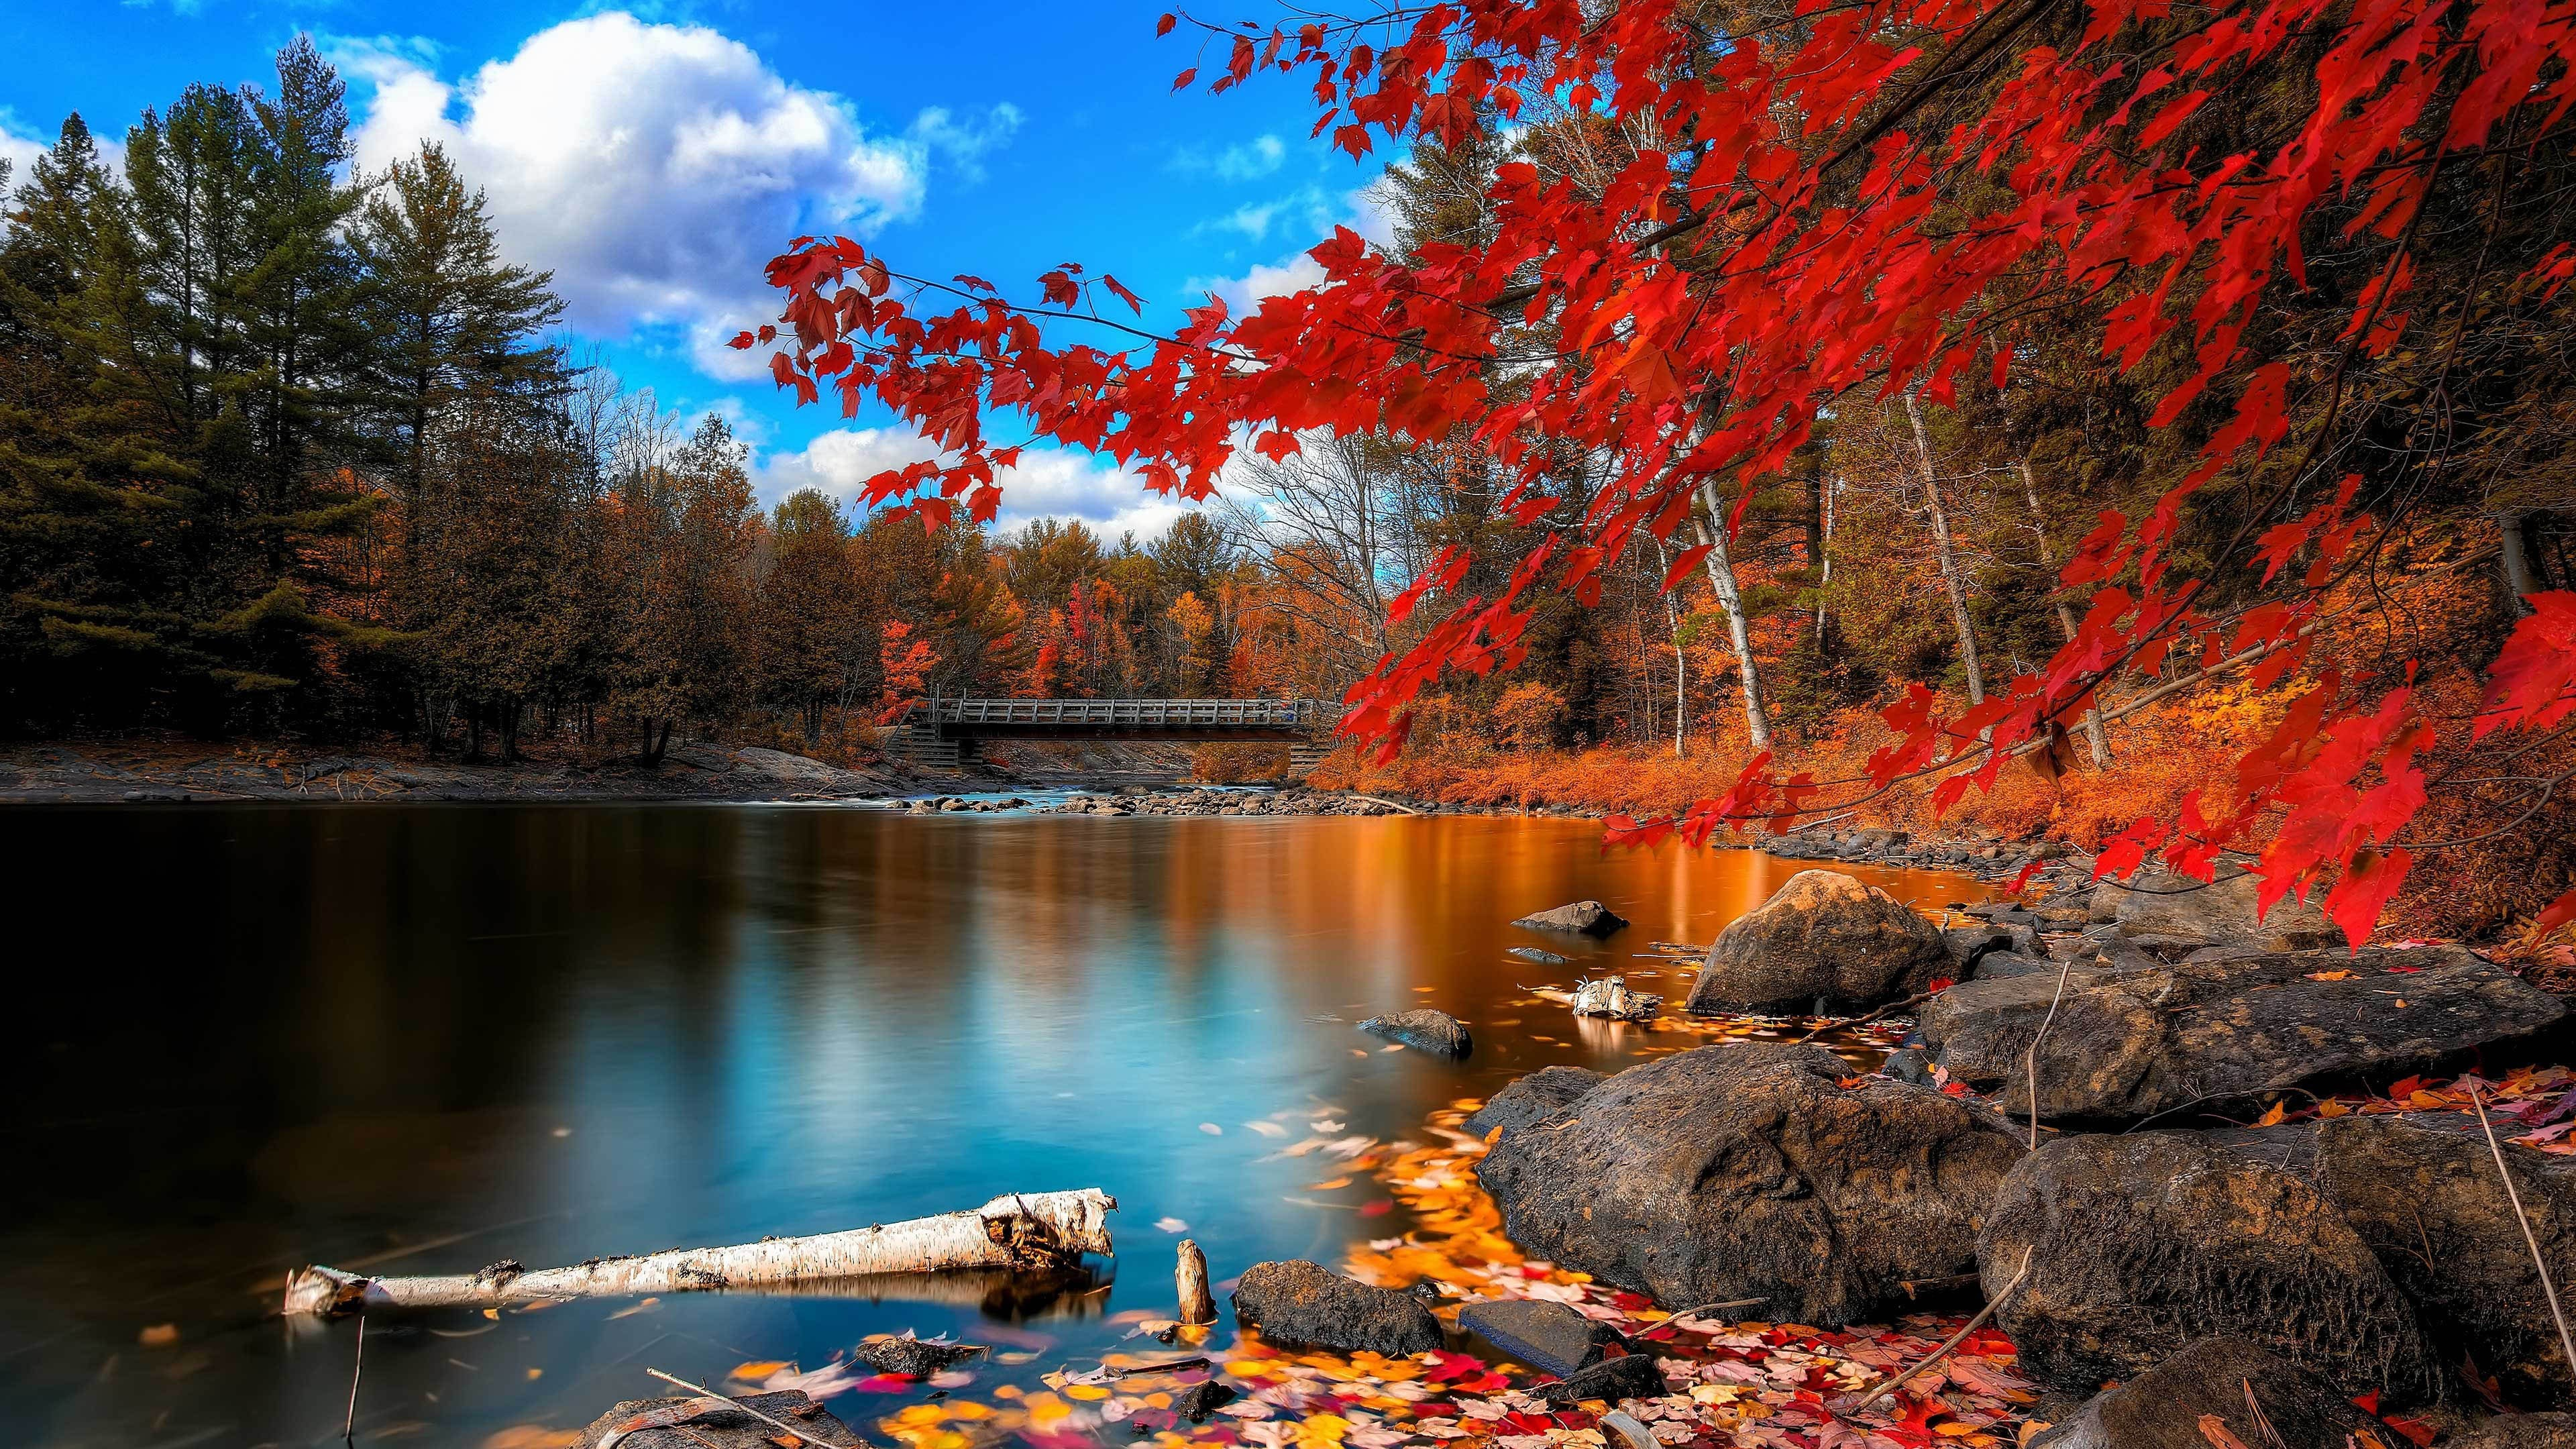 Autumn lake and trees